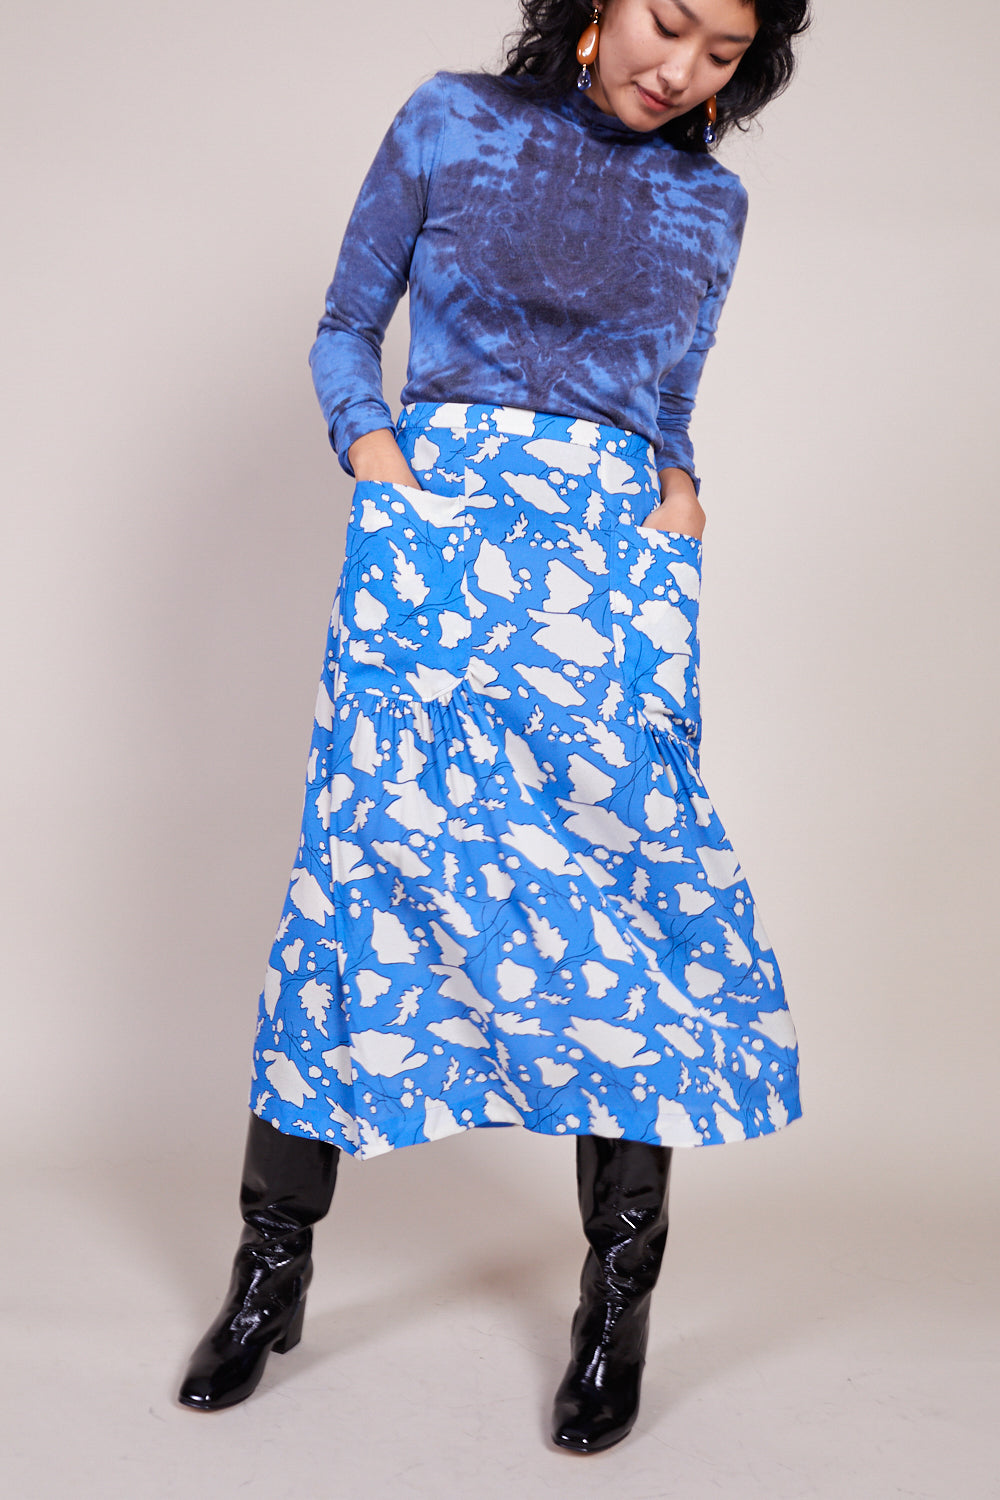 Dreamer Skirt in French Blue Bold Floral